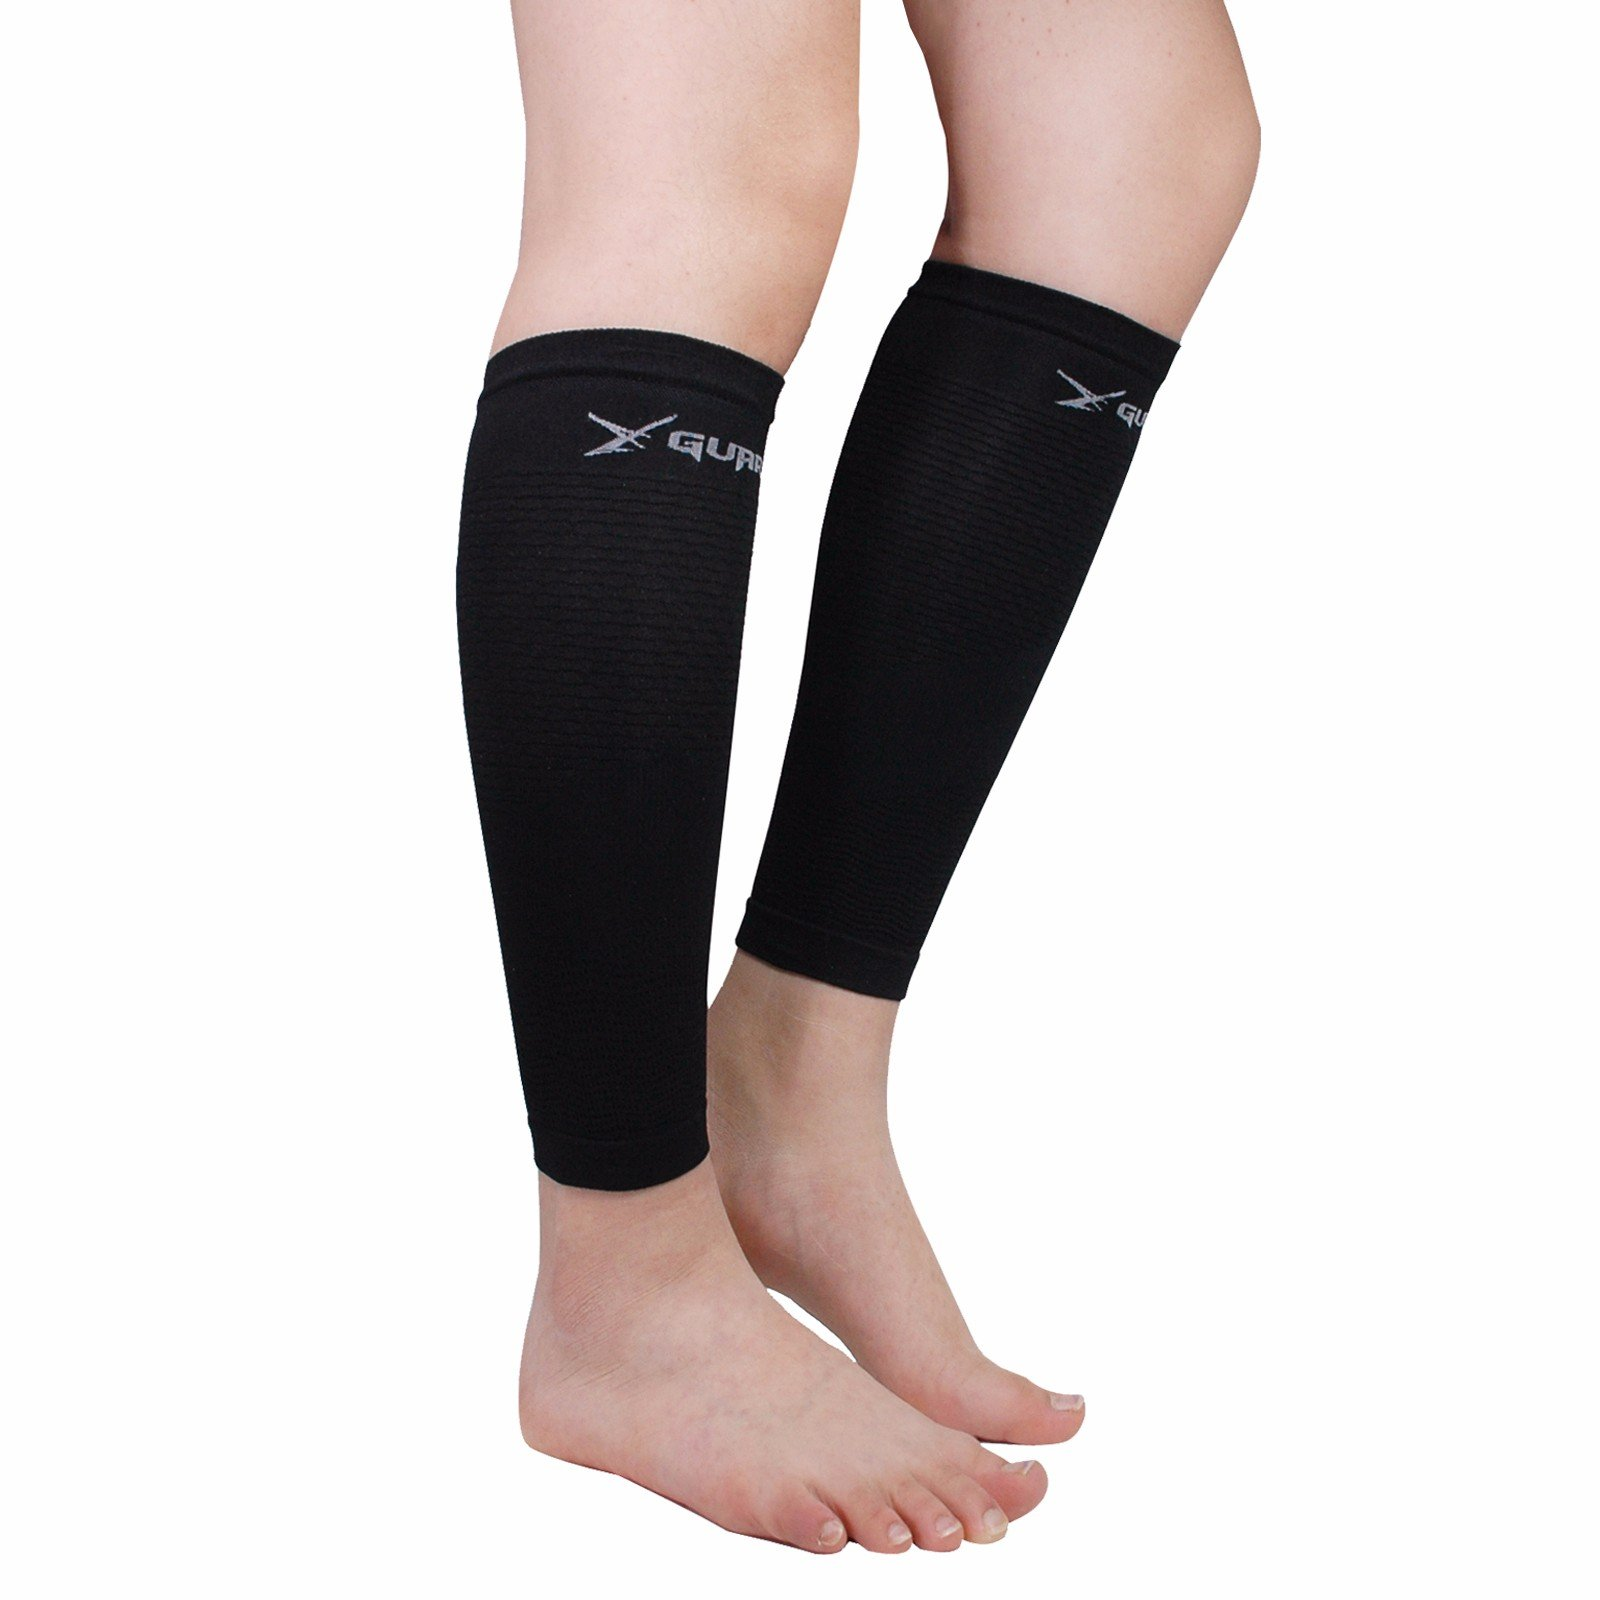 Leg Compression Sleeve Pair Tattoo Cover up for Women Men - Calf Shin Support for Shin Splints and Calf Pain Relief Basketball Running Enhance Blood Circulation Two Pieces (Black)